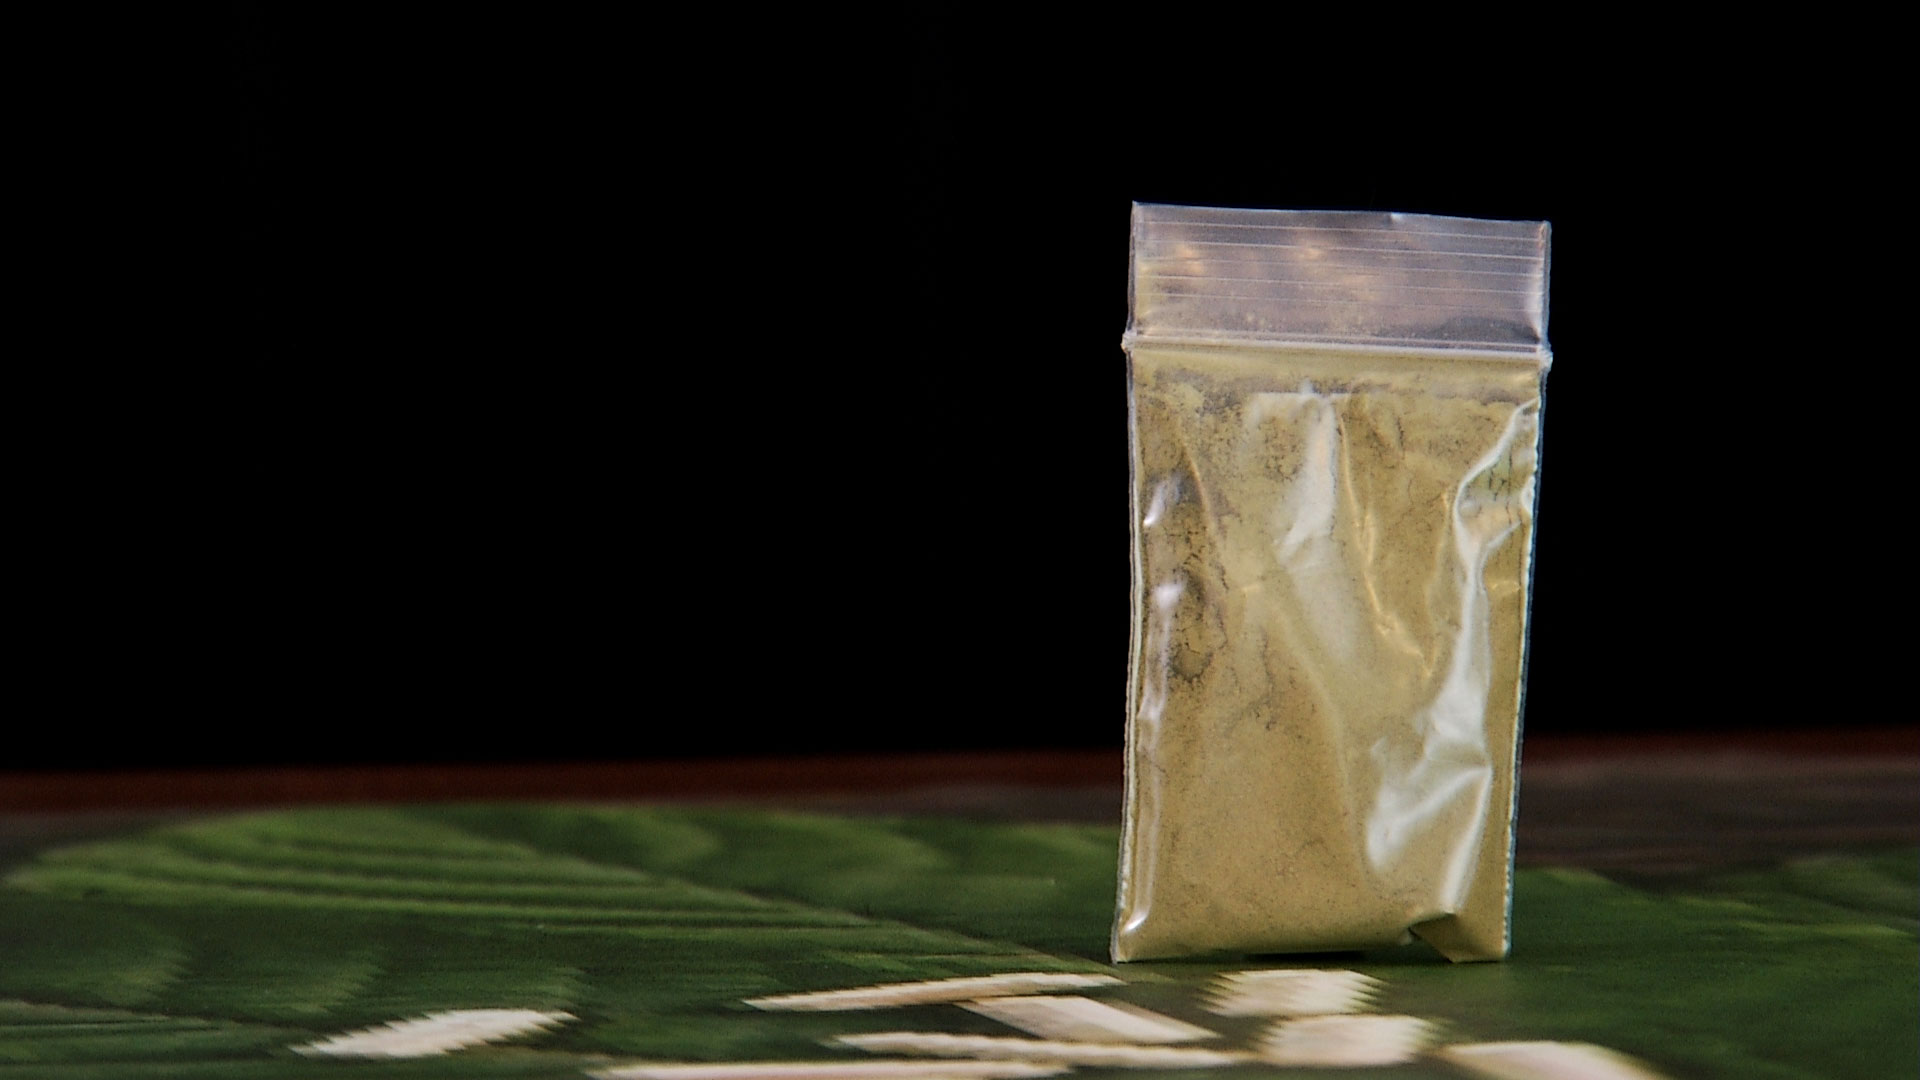 A sealed, plastic bag contains the substance kratom.